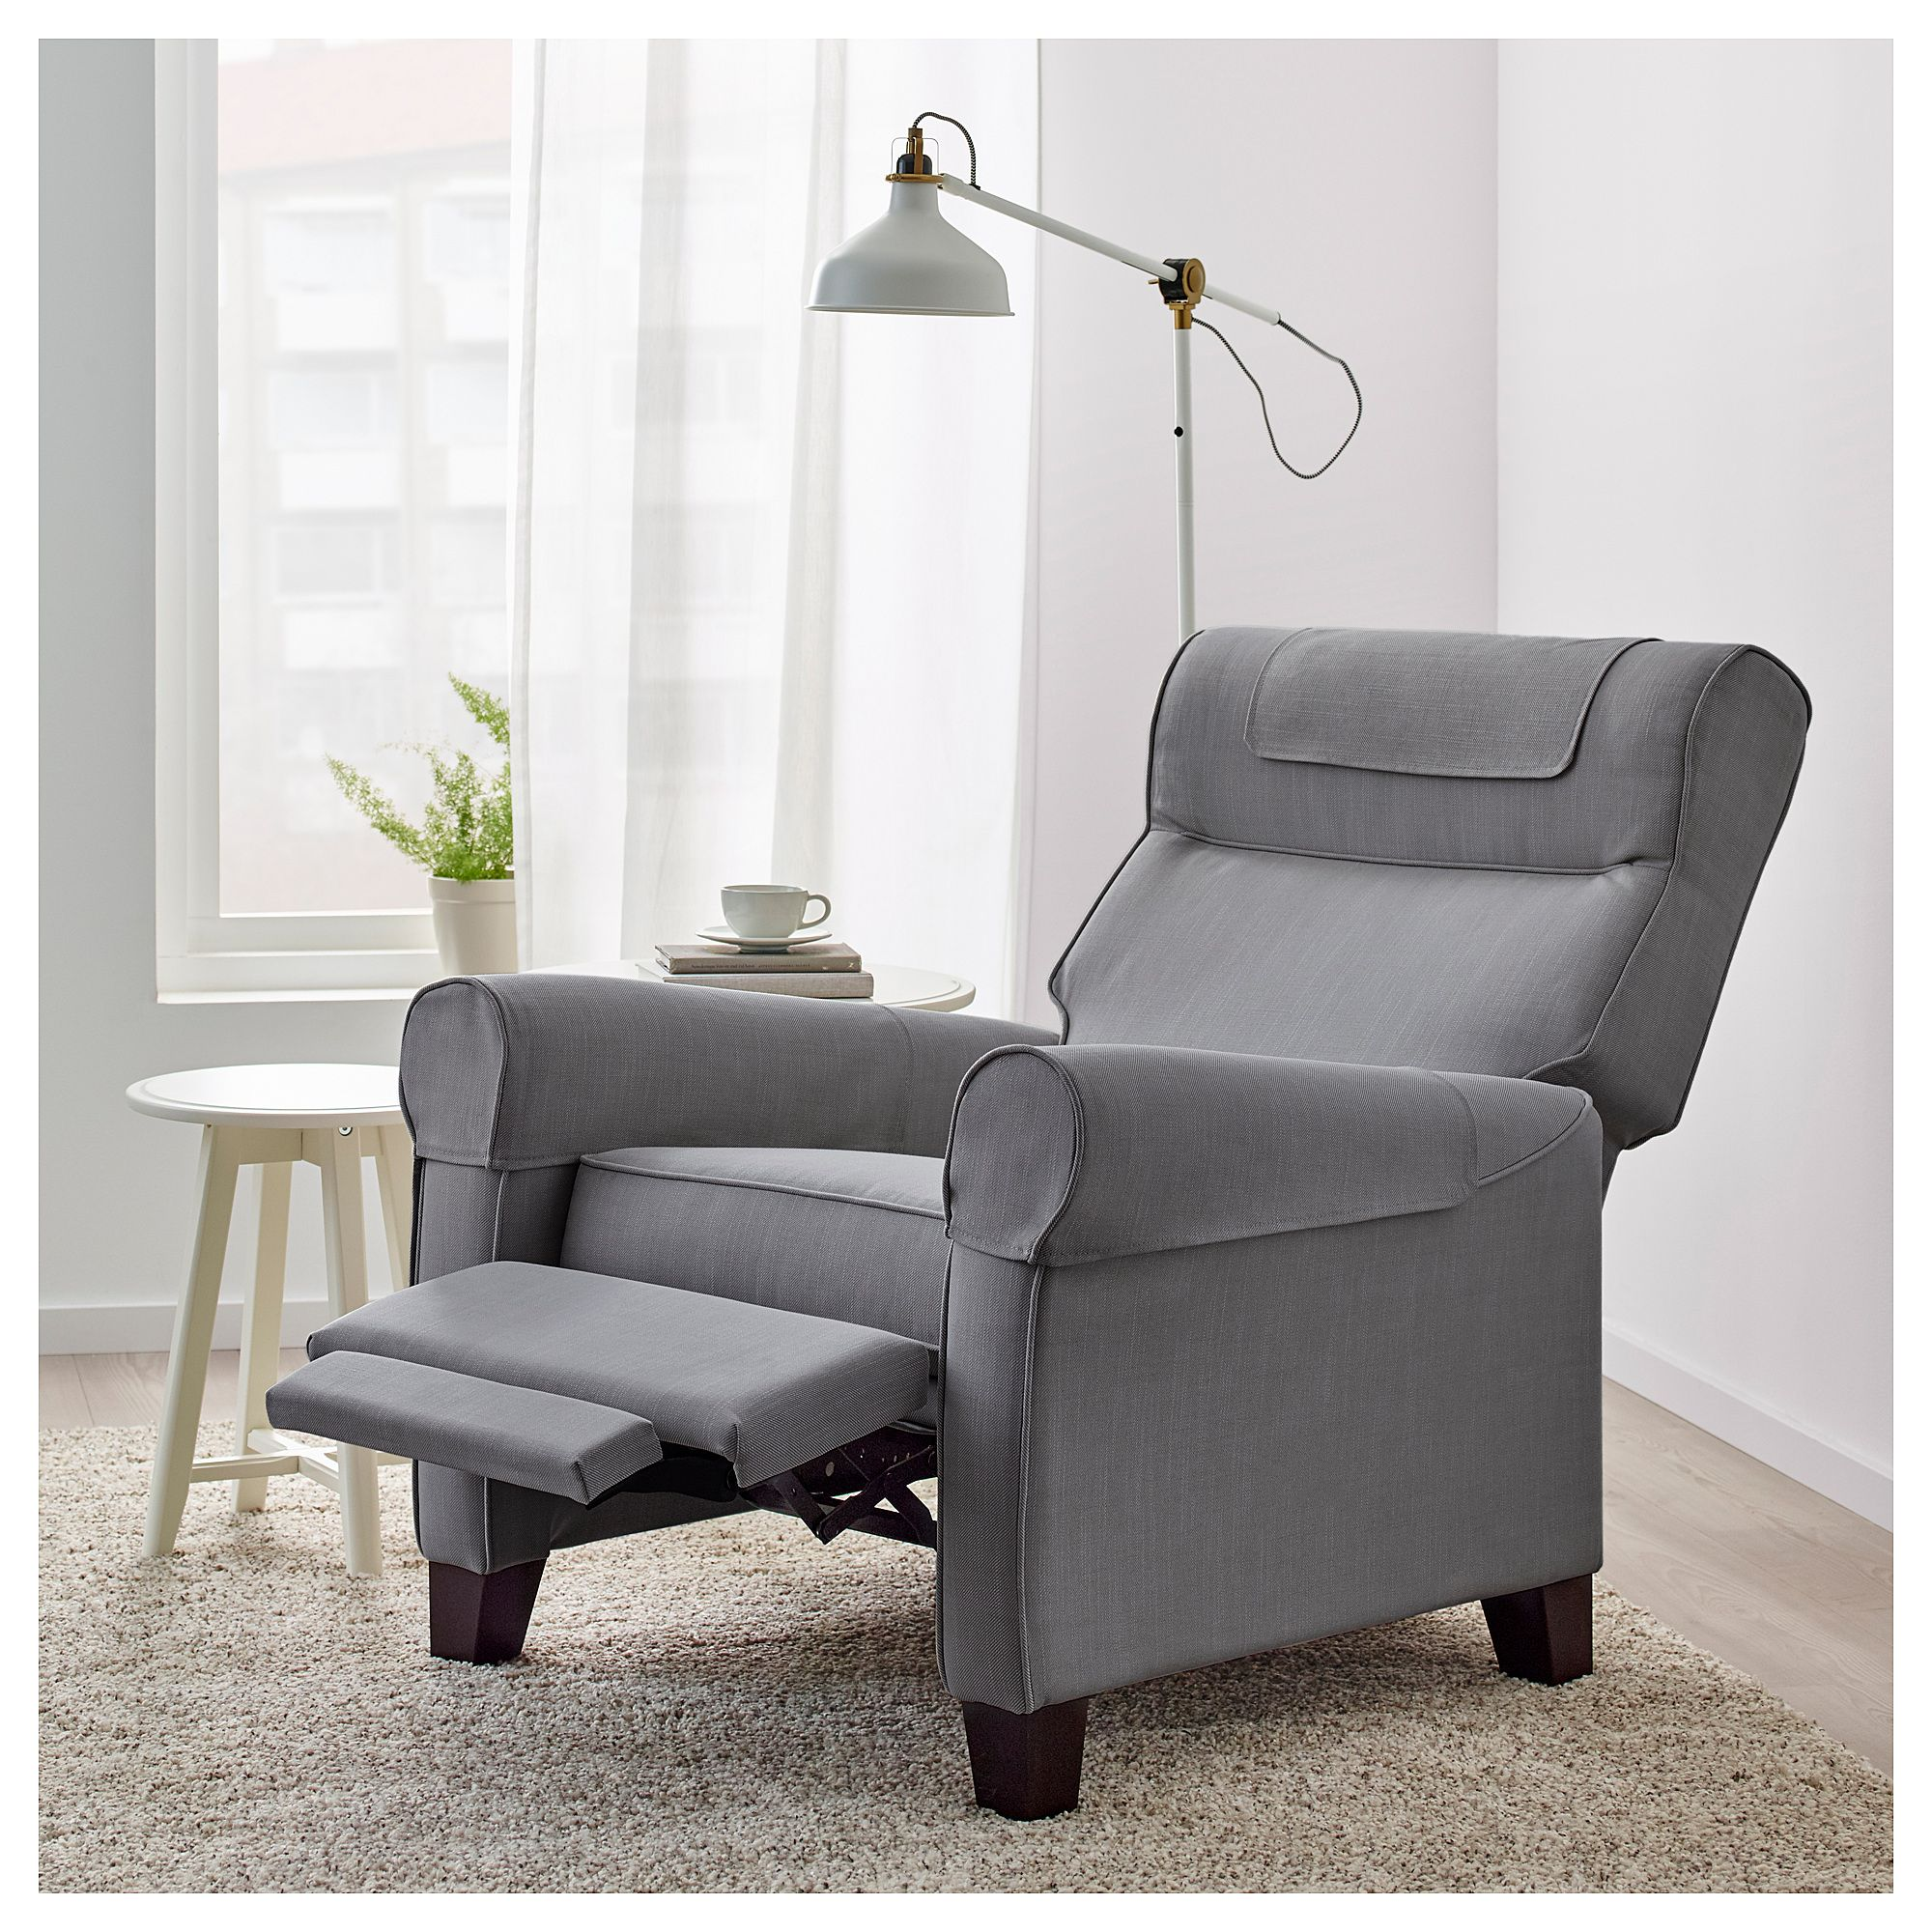 Ikea Liegesessel Ikea Muren Recliner Nordvalla Medium Gray Ideas For The House